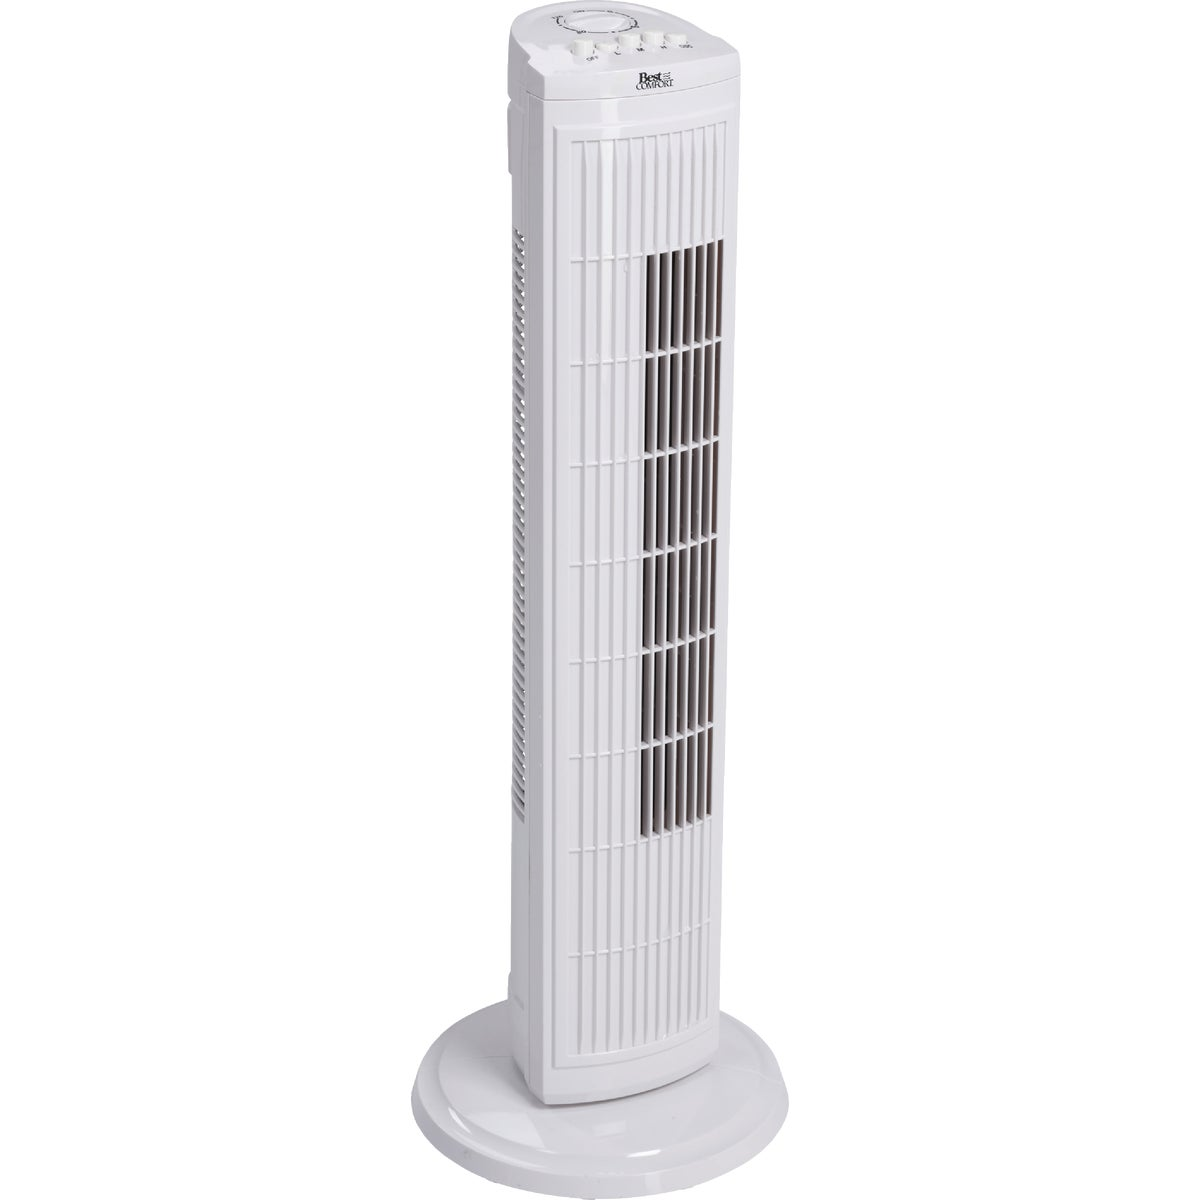 "30"" 3-SPEED TOWER FAN - FZ10-9HA by Do it Best"